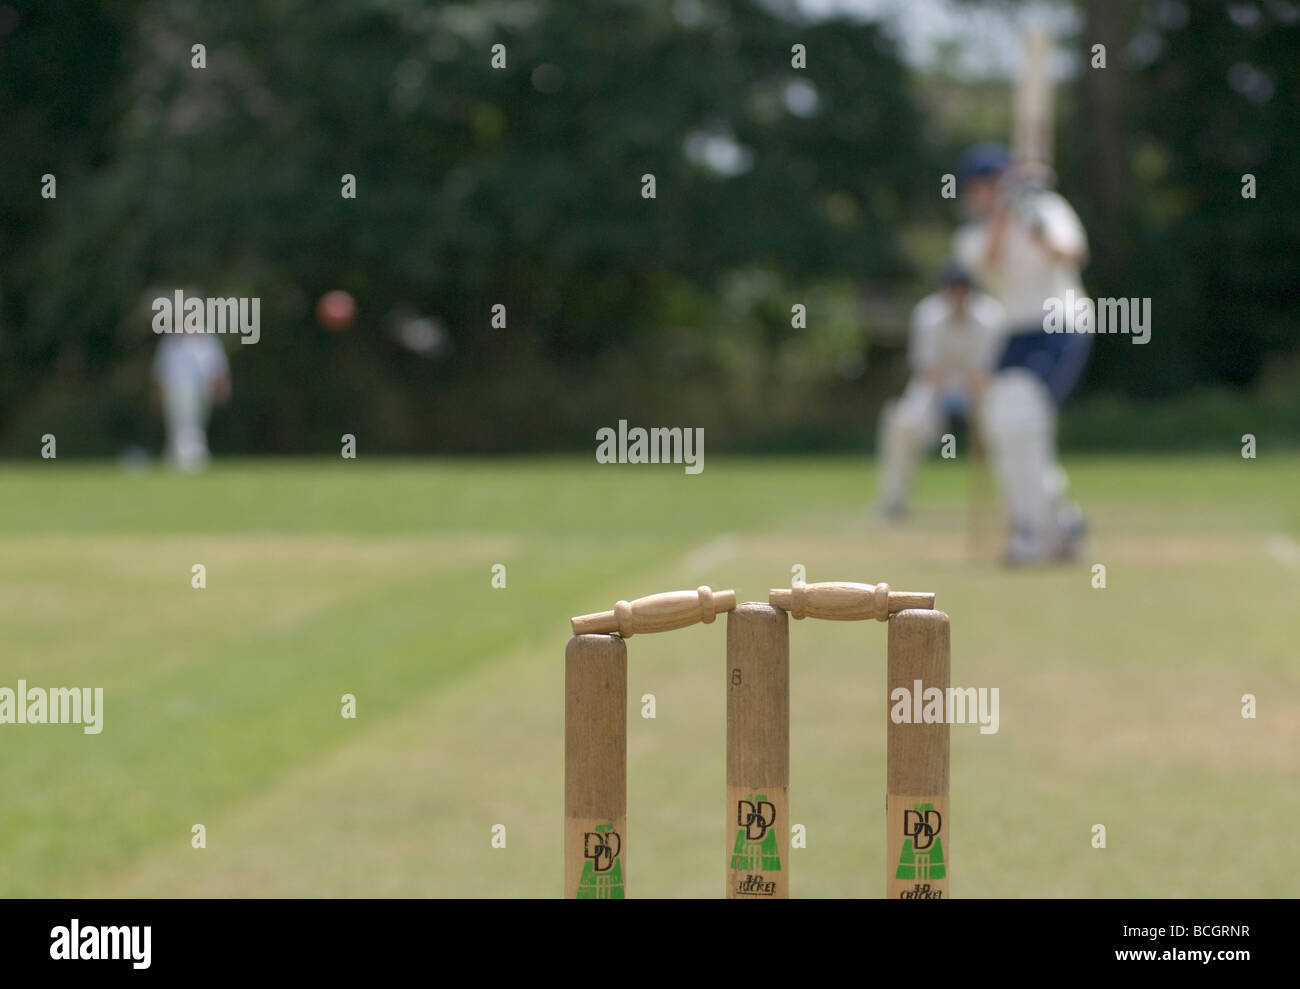 wickets stumps and bail at Cricket game - Stock Image